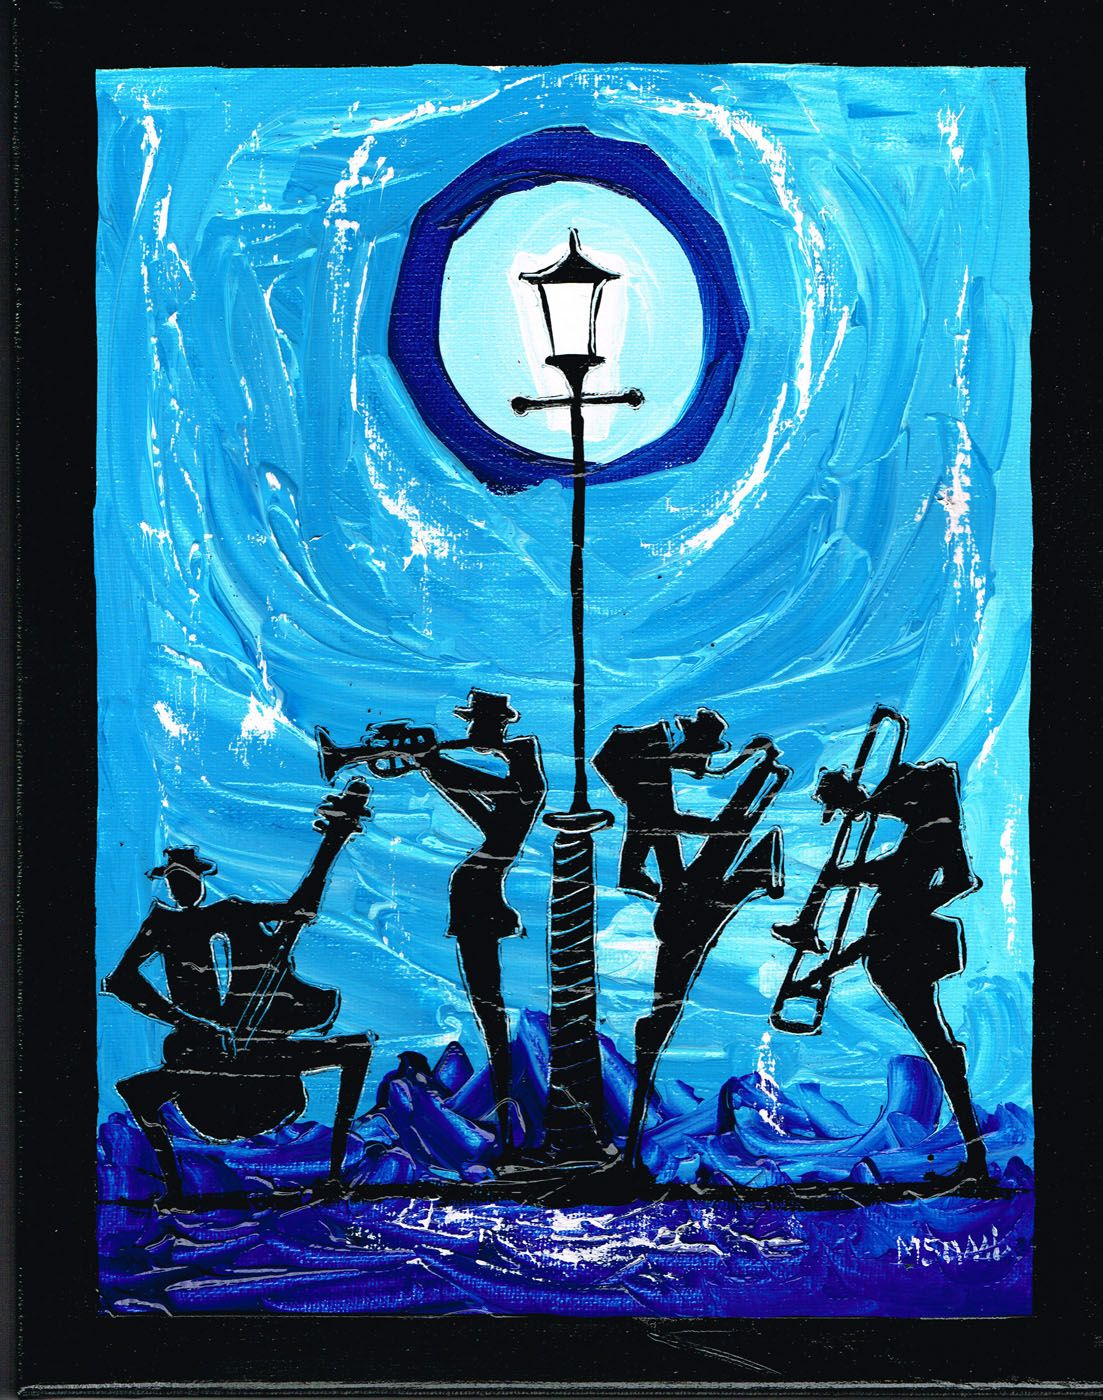 Cool blues for some cool jazz original acrylic painting